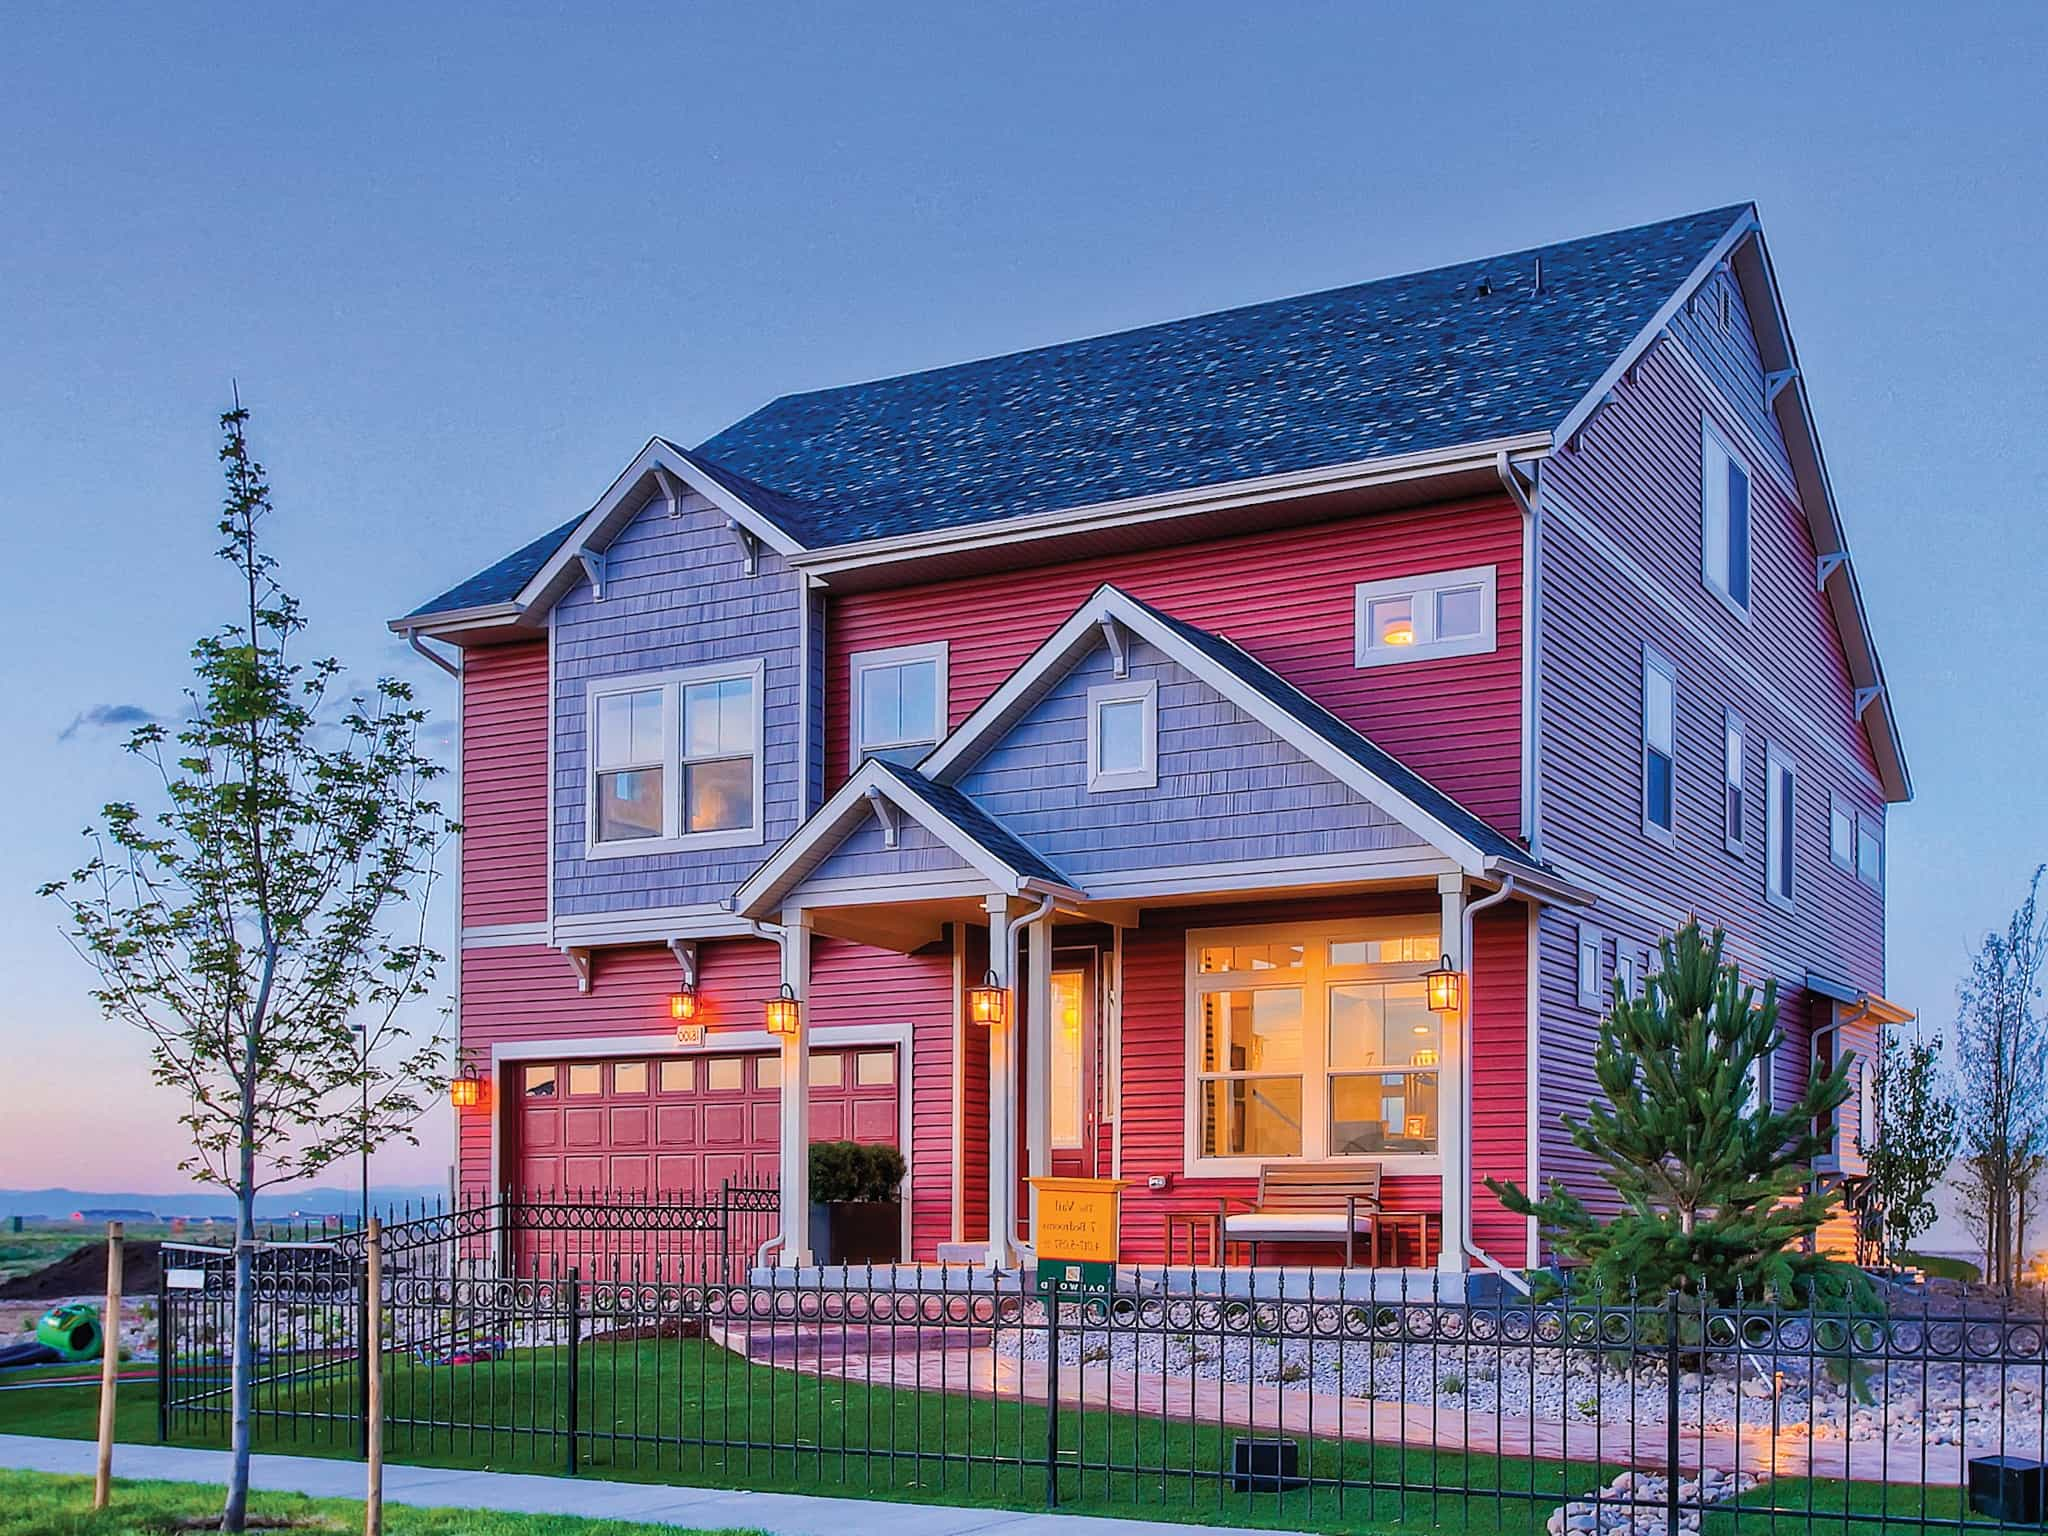 Cape Cod House Exterior With Red Siding 48346 House